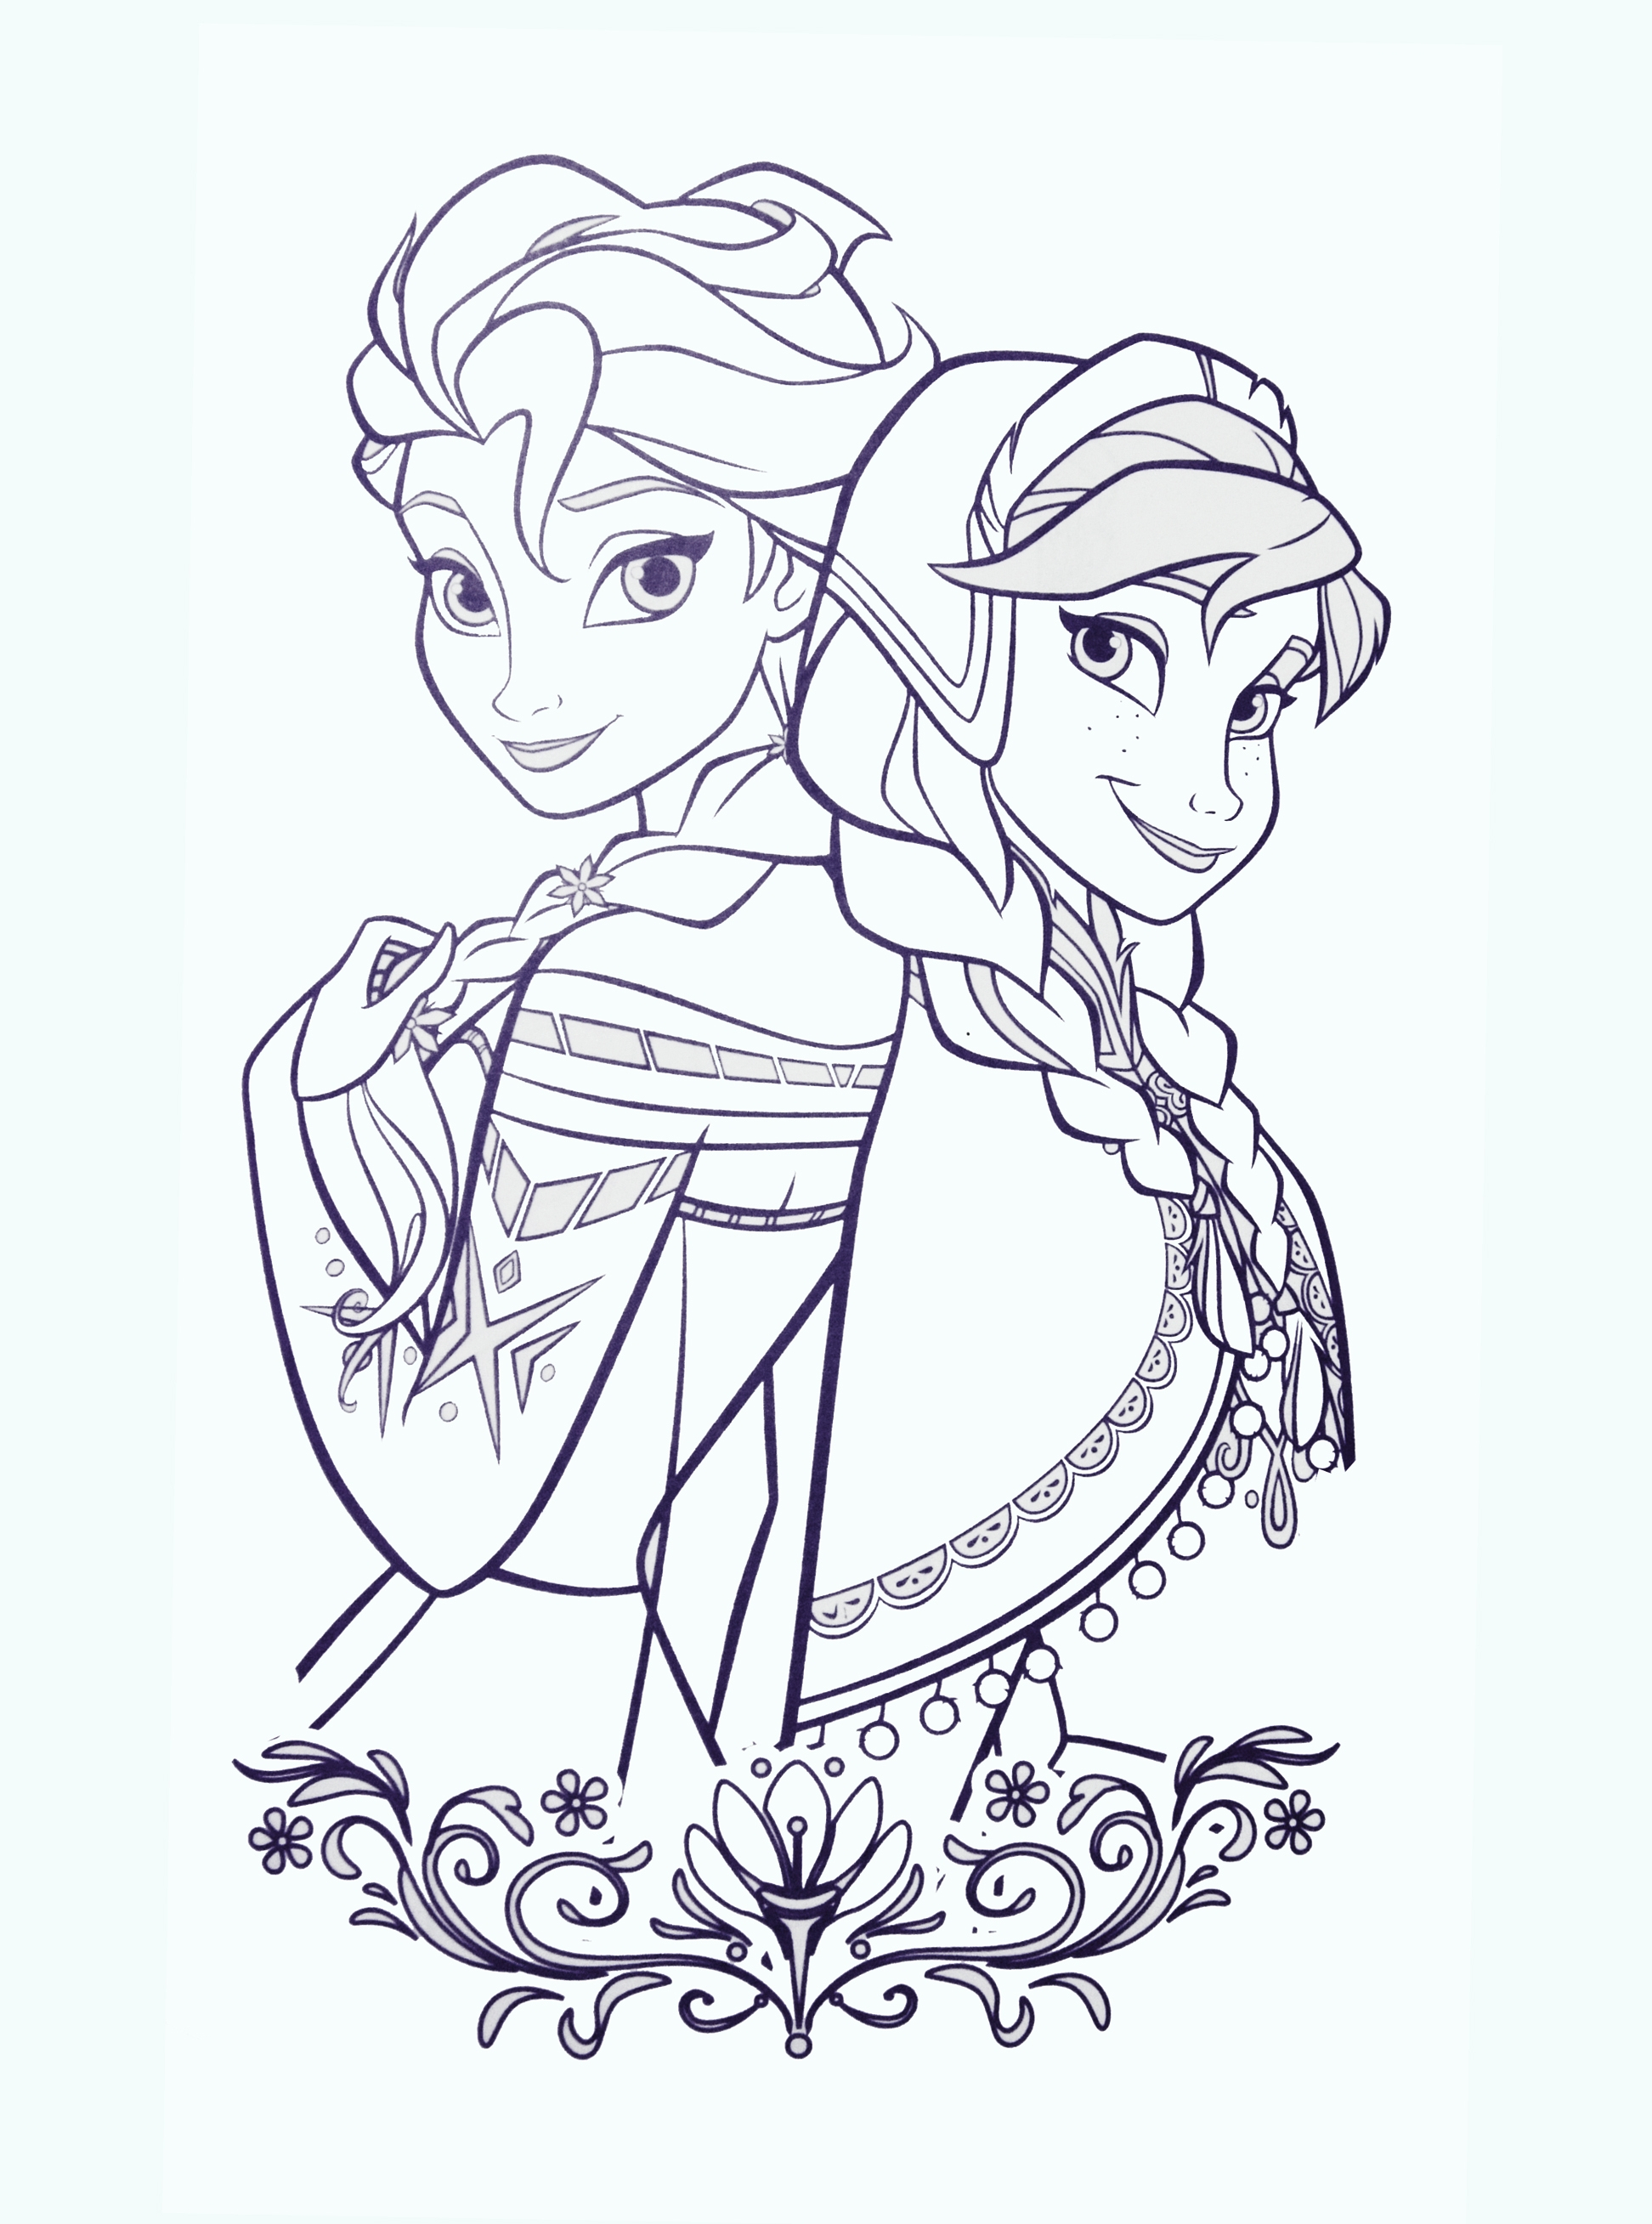 20 Frozen Elsa Coloring Pages Compilation Free Coloring Pages